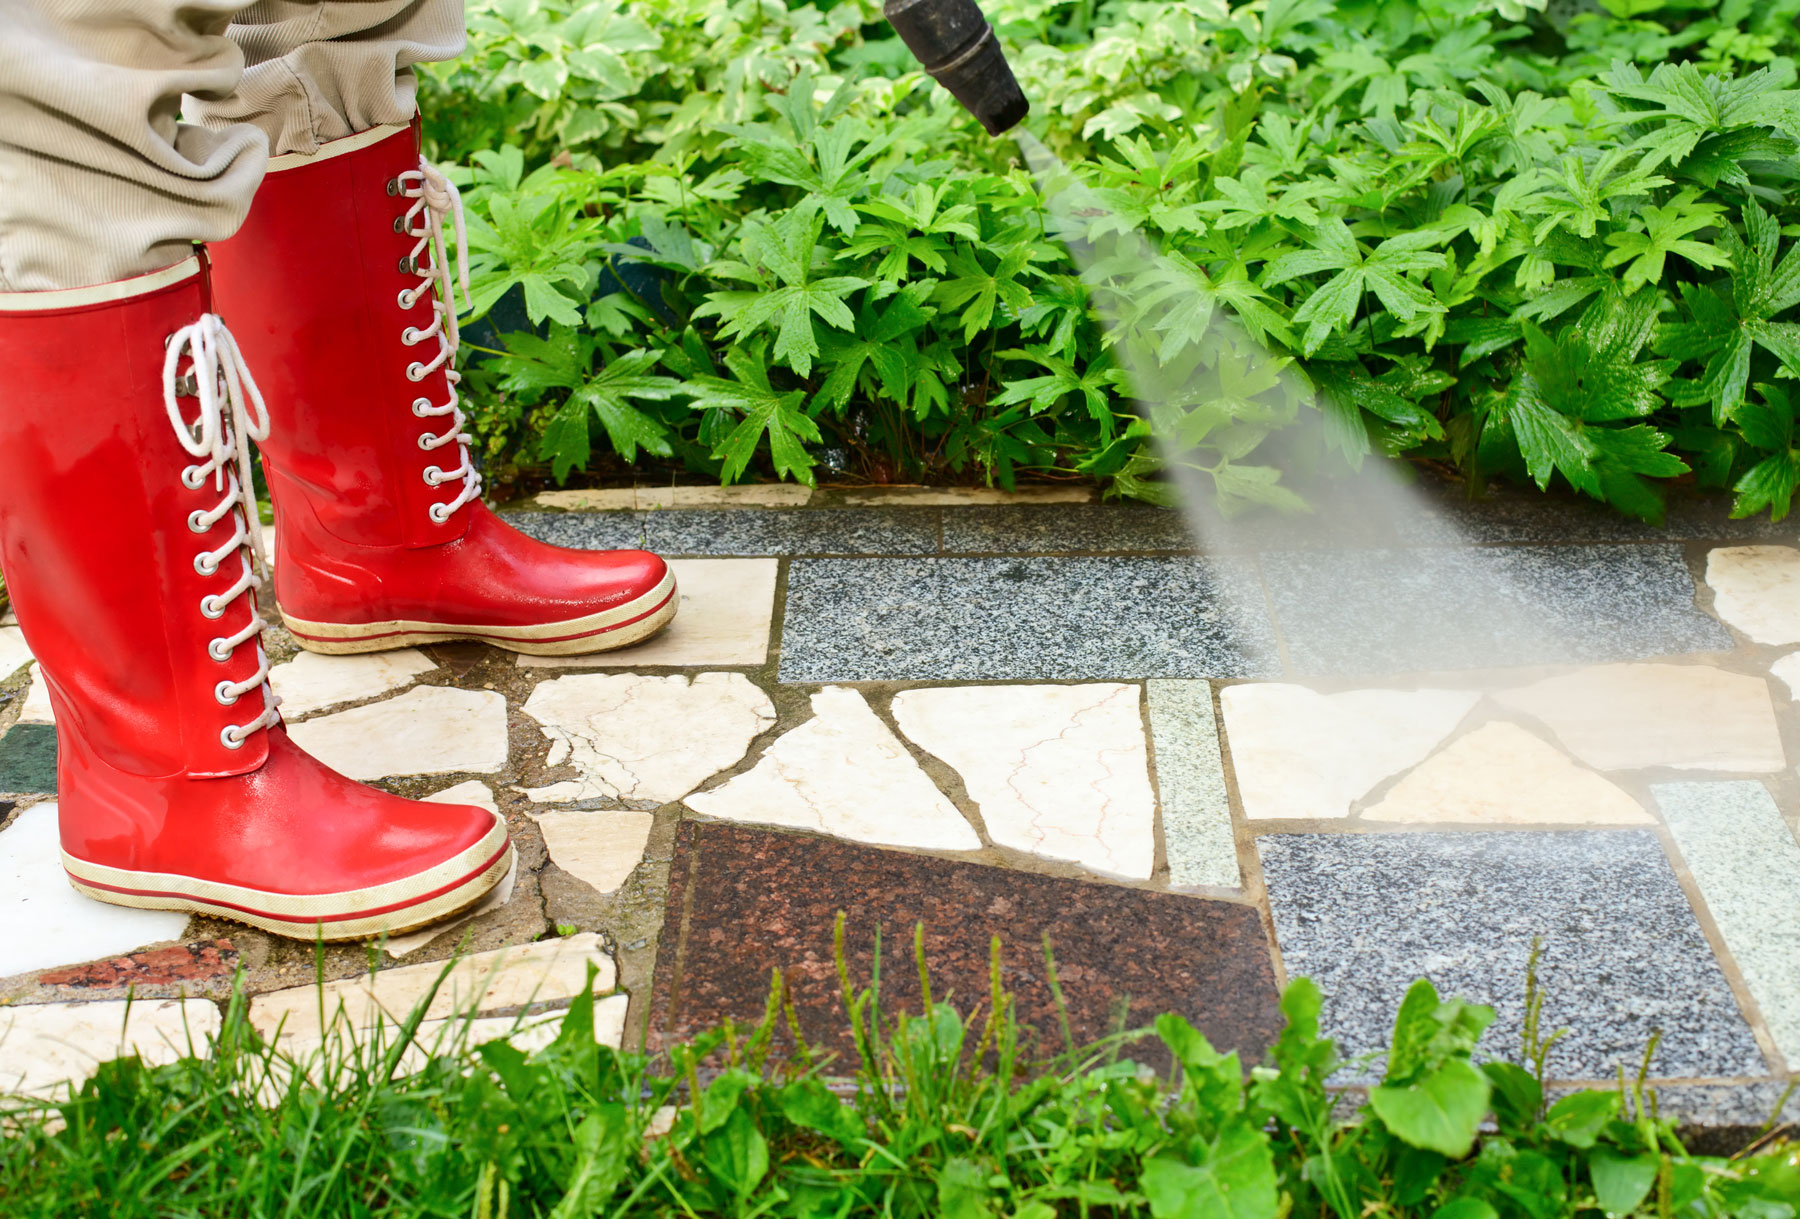 Spraying path with red boots